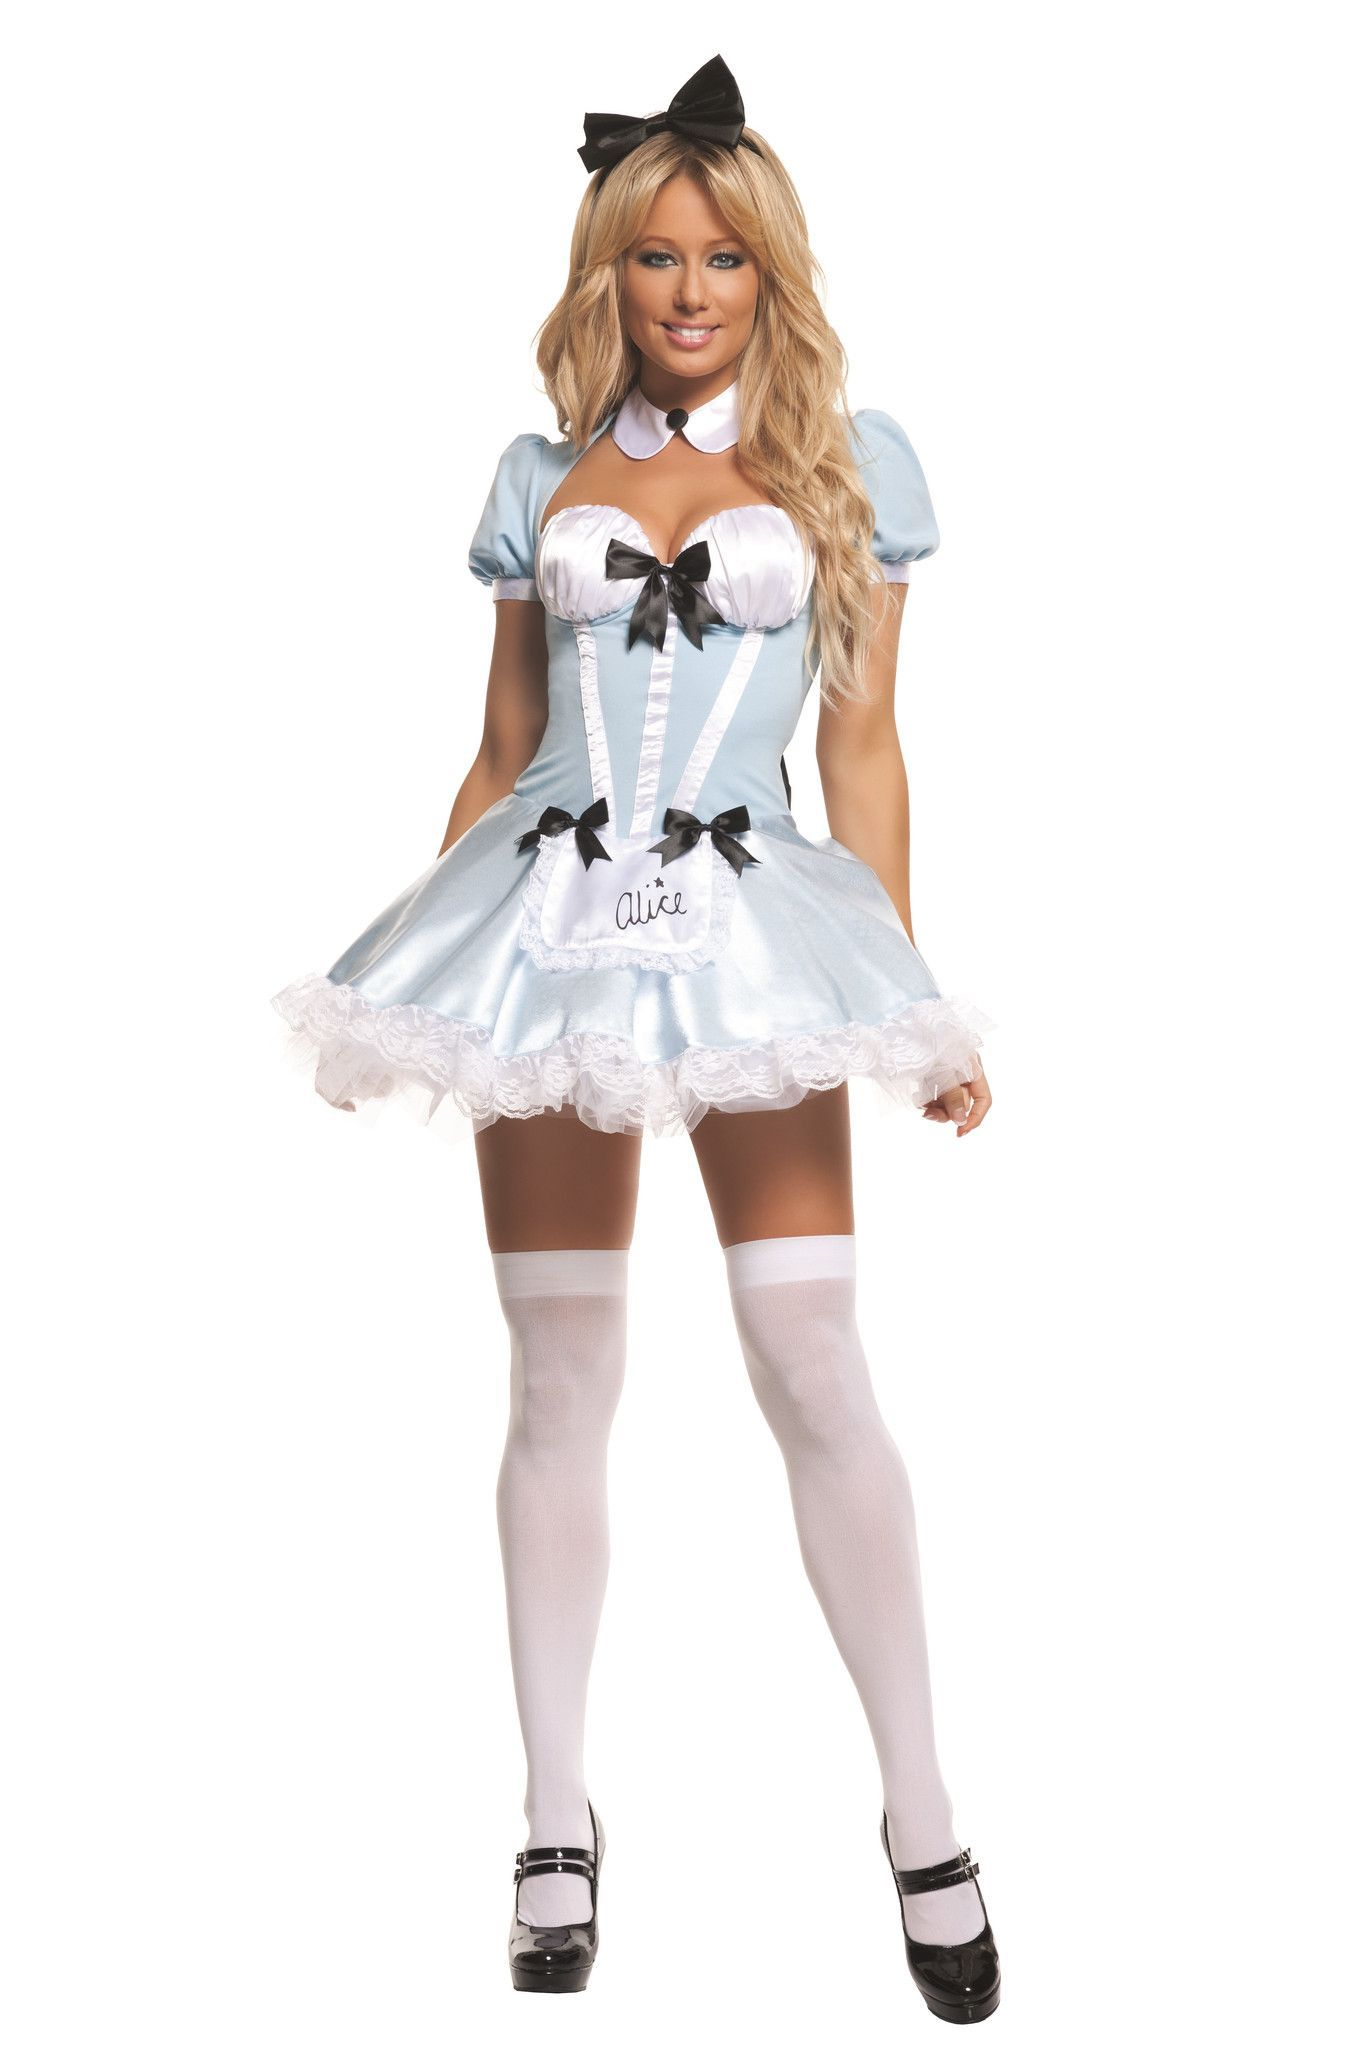 Sexy alice in wonderland costume images 341